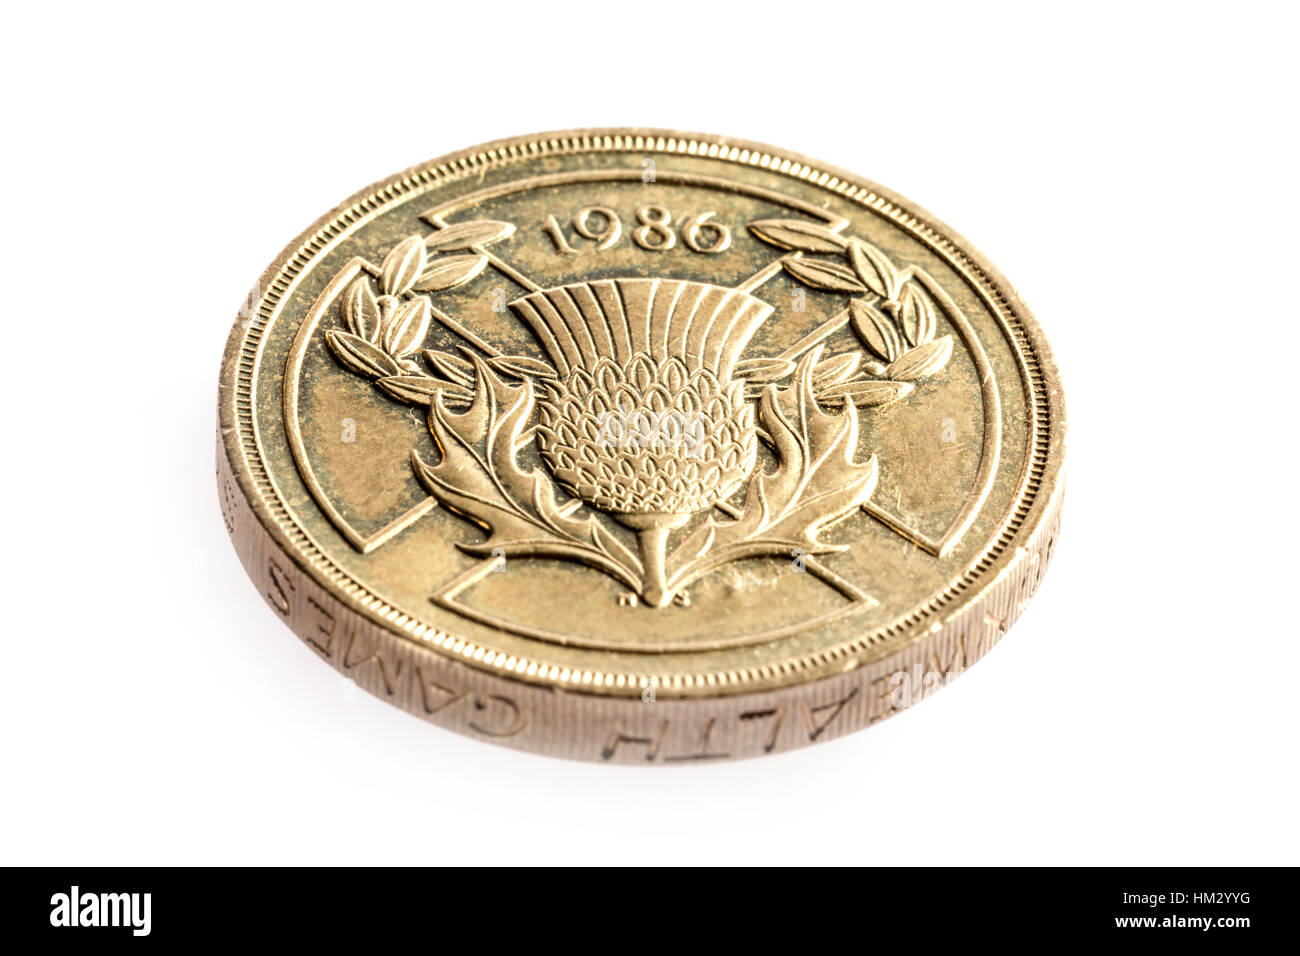 1986 two pound coin introduced to mark the commonwealth games - Stock Image